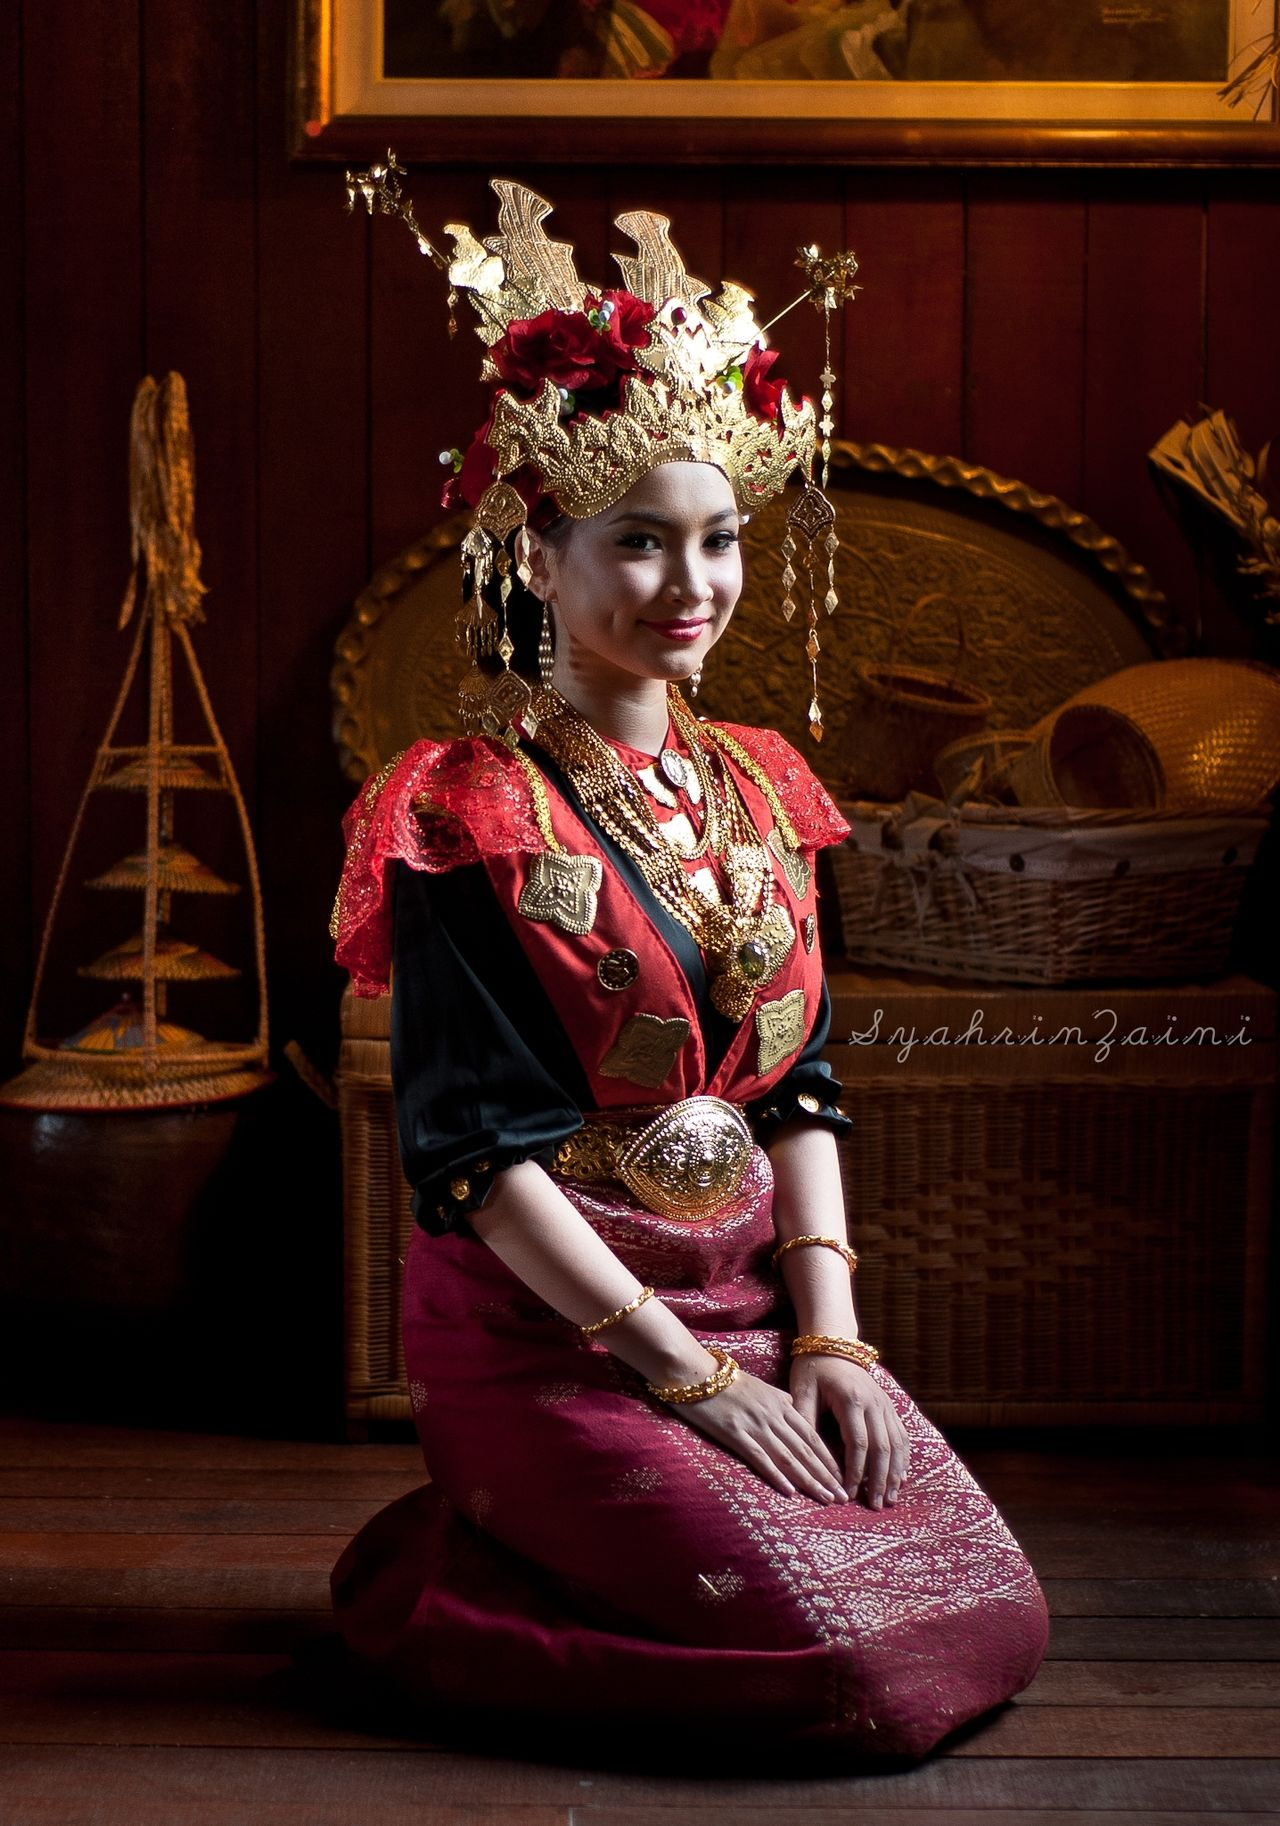 Only Women Beauty One Person Portrait Beautiful People Beautiful Woman One Woman Only Elégance Young Adult Headdress Sarawak Borneo Island Arts Culture And Entertainment Sarawak Culture Sarawak Malaysia Traditional Costume Traditional Clothing Malaysia Photography Traditional Culture Malaysianphotographer Melanau People